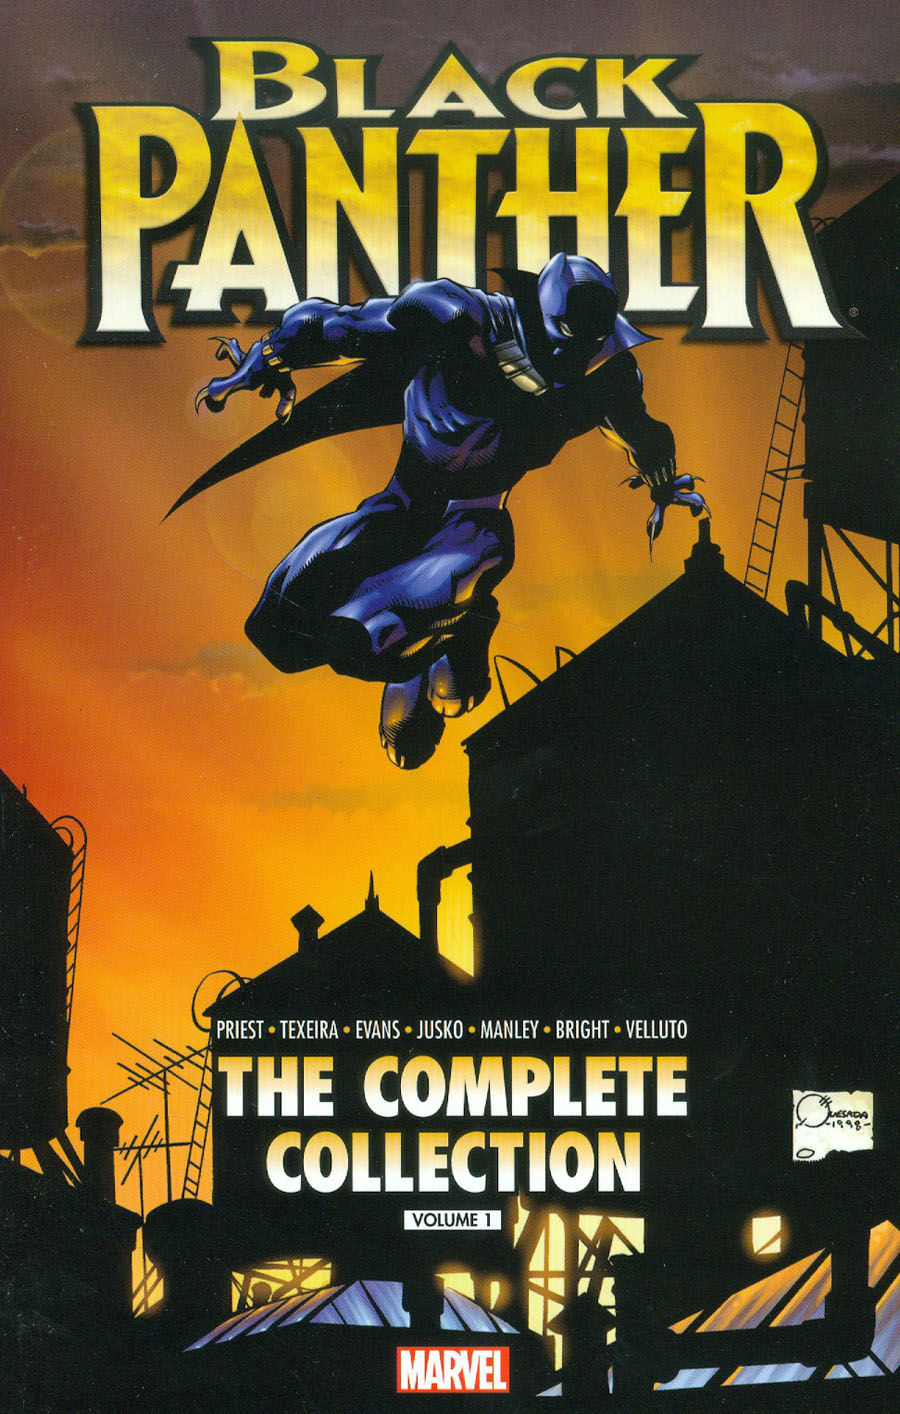 Black Panther By Christopher Priest Complete Collection Vol 1 TP